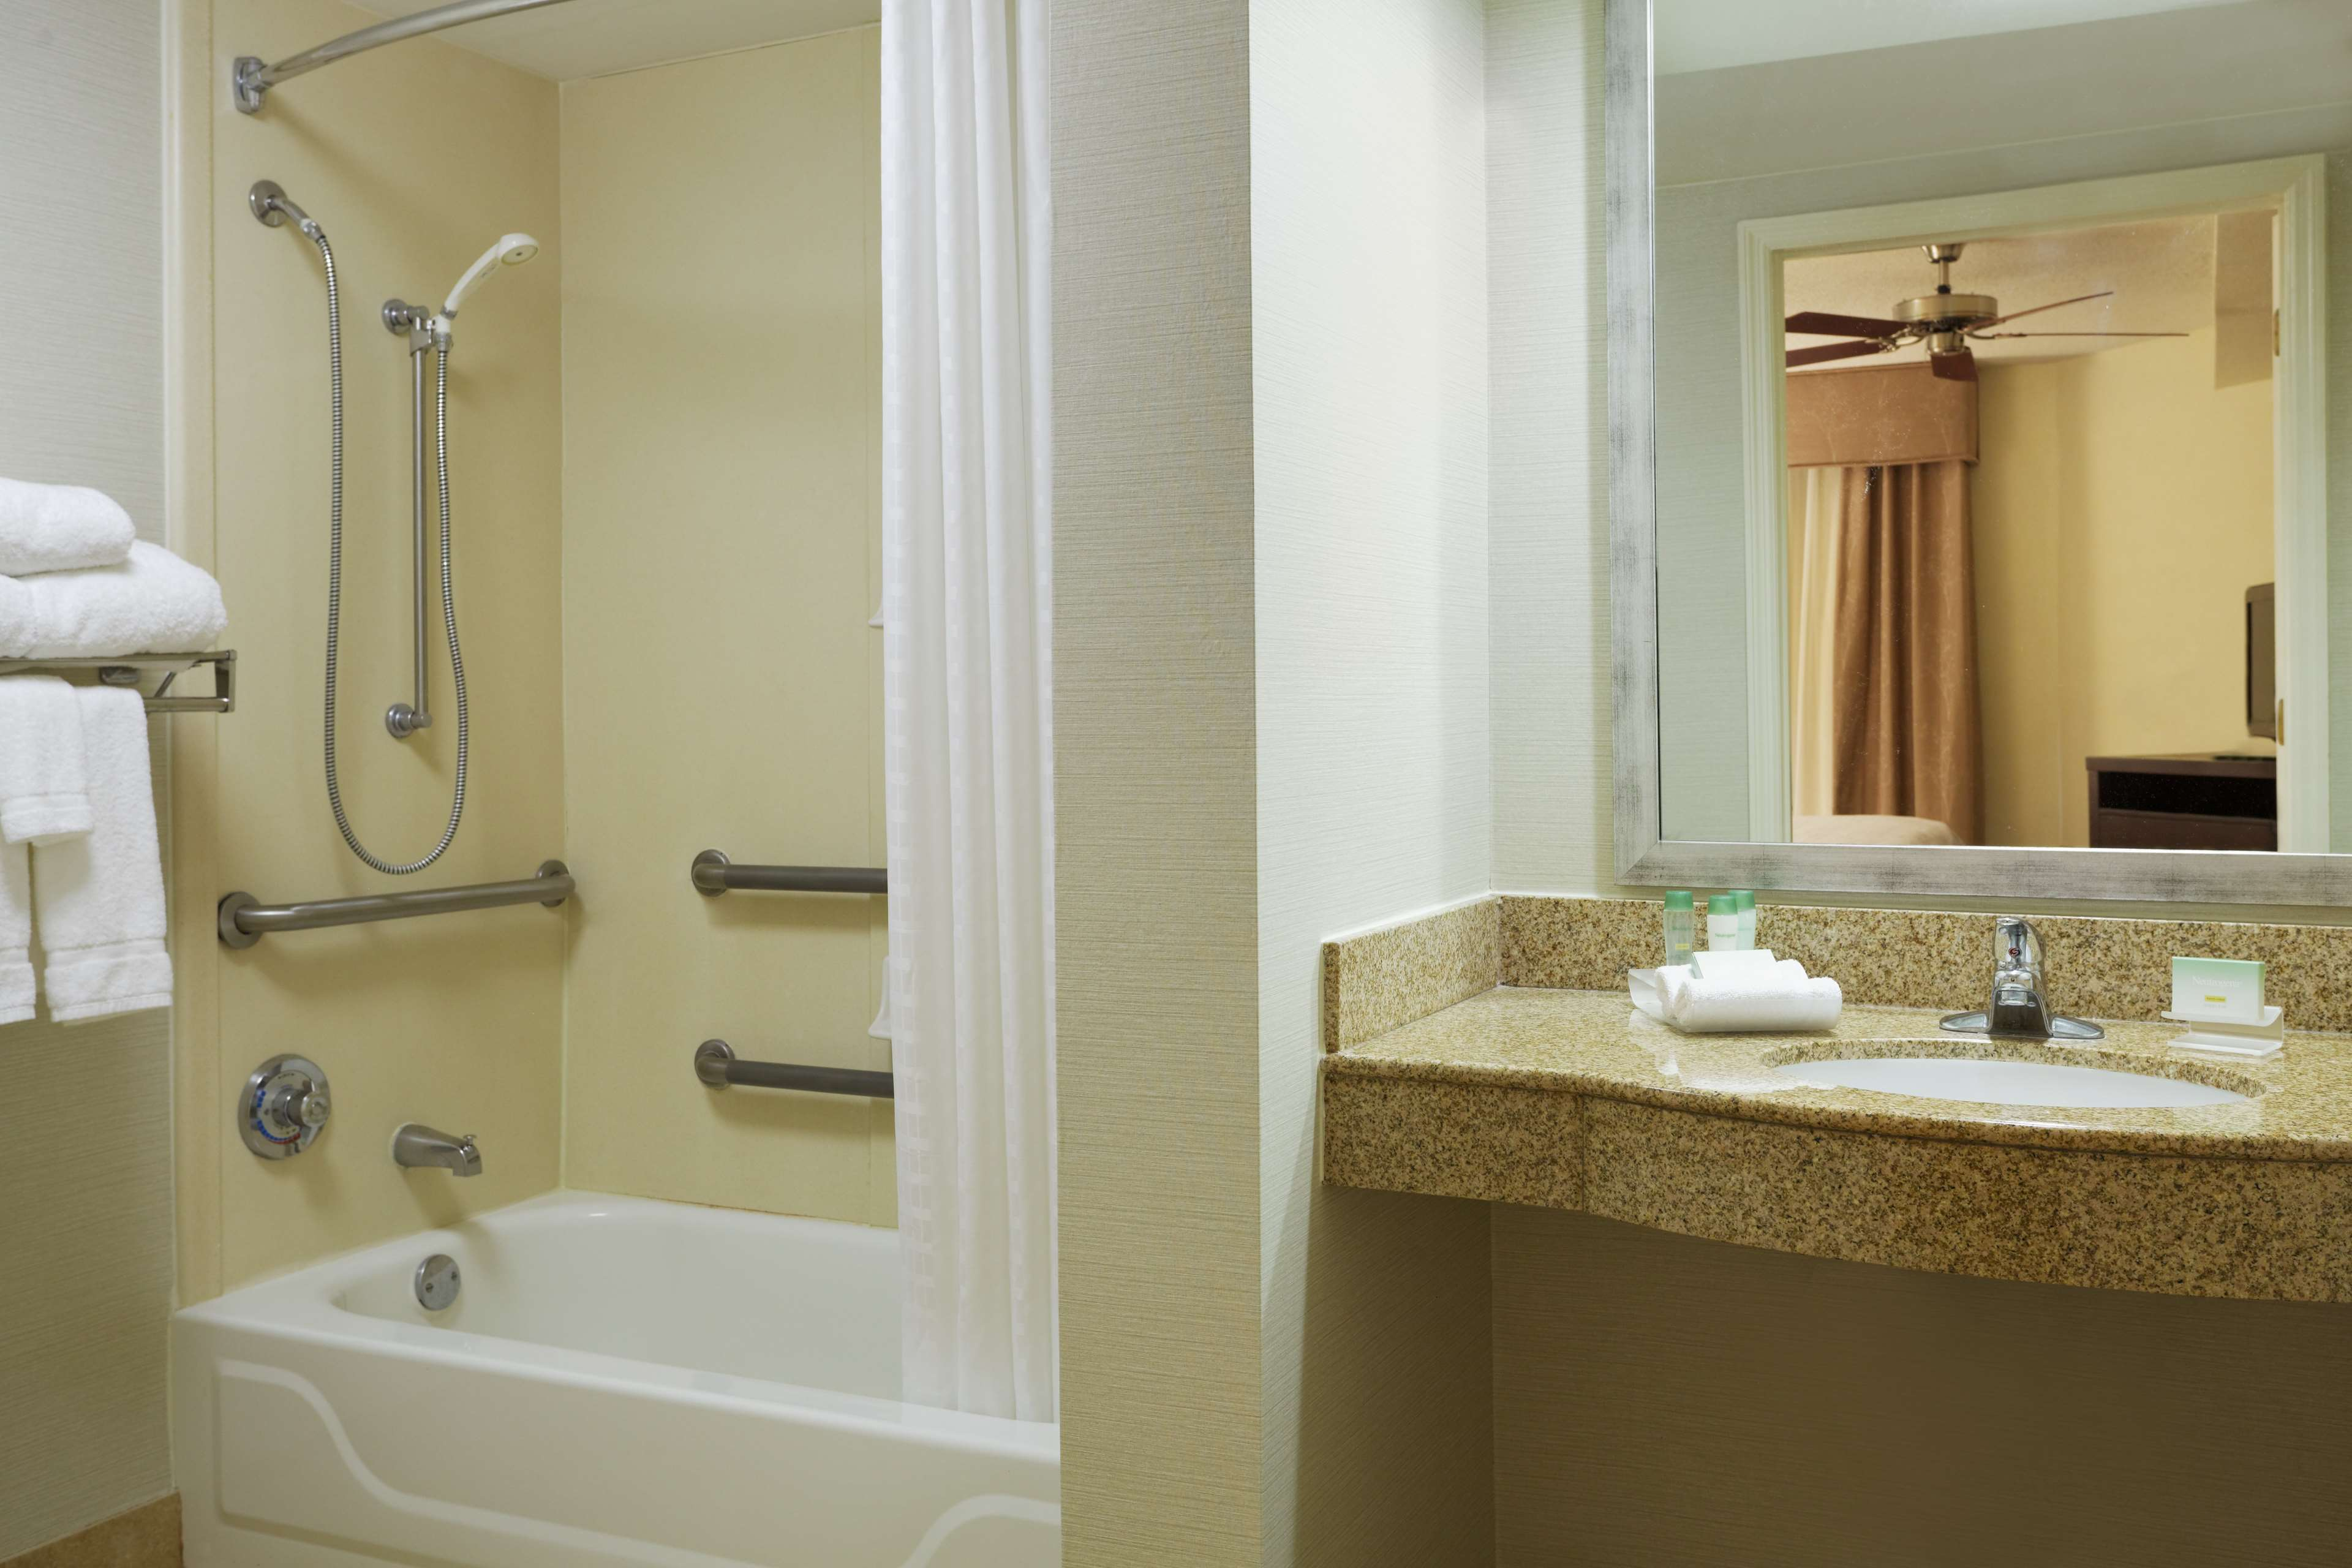 Homewood Suites by Hilton Raleigh-Durham AP/Research Triangle image 9